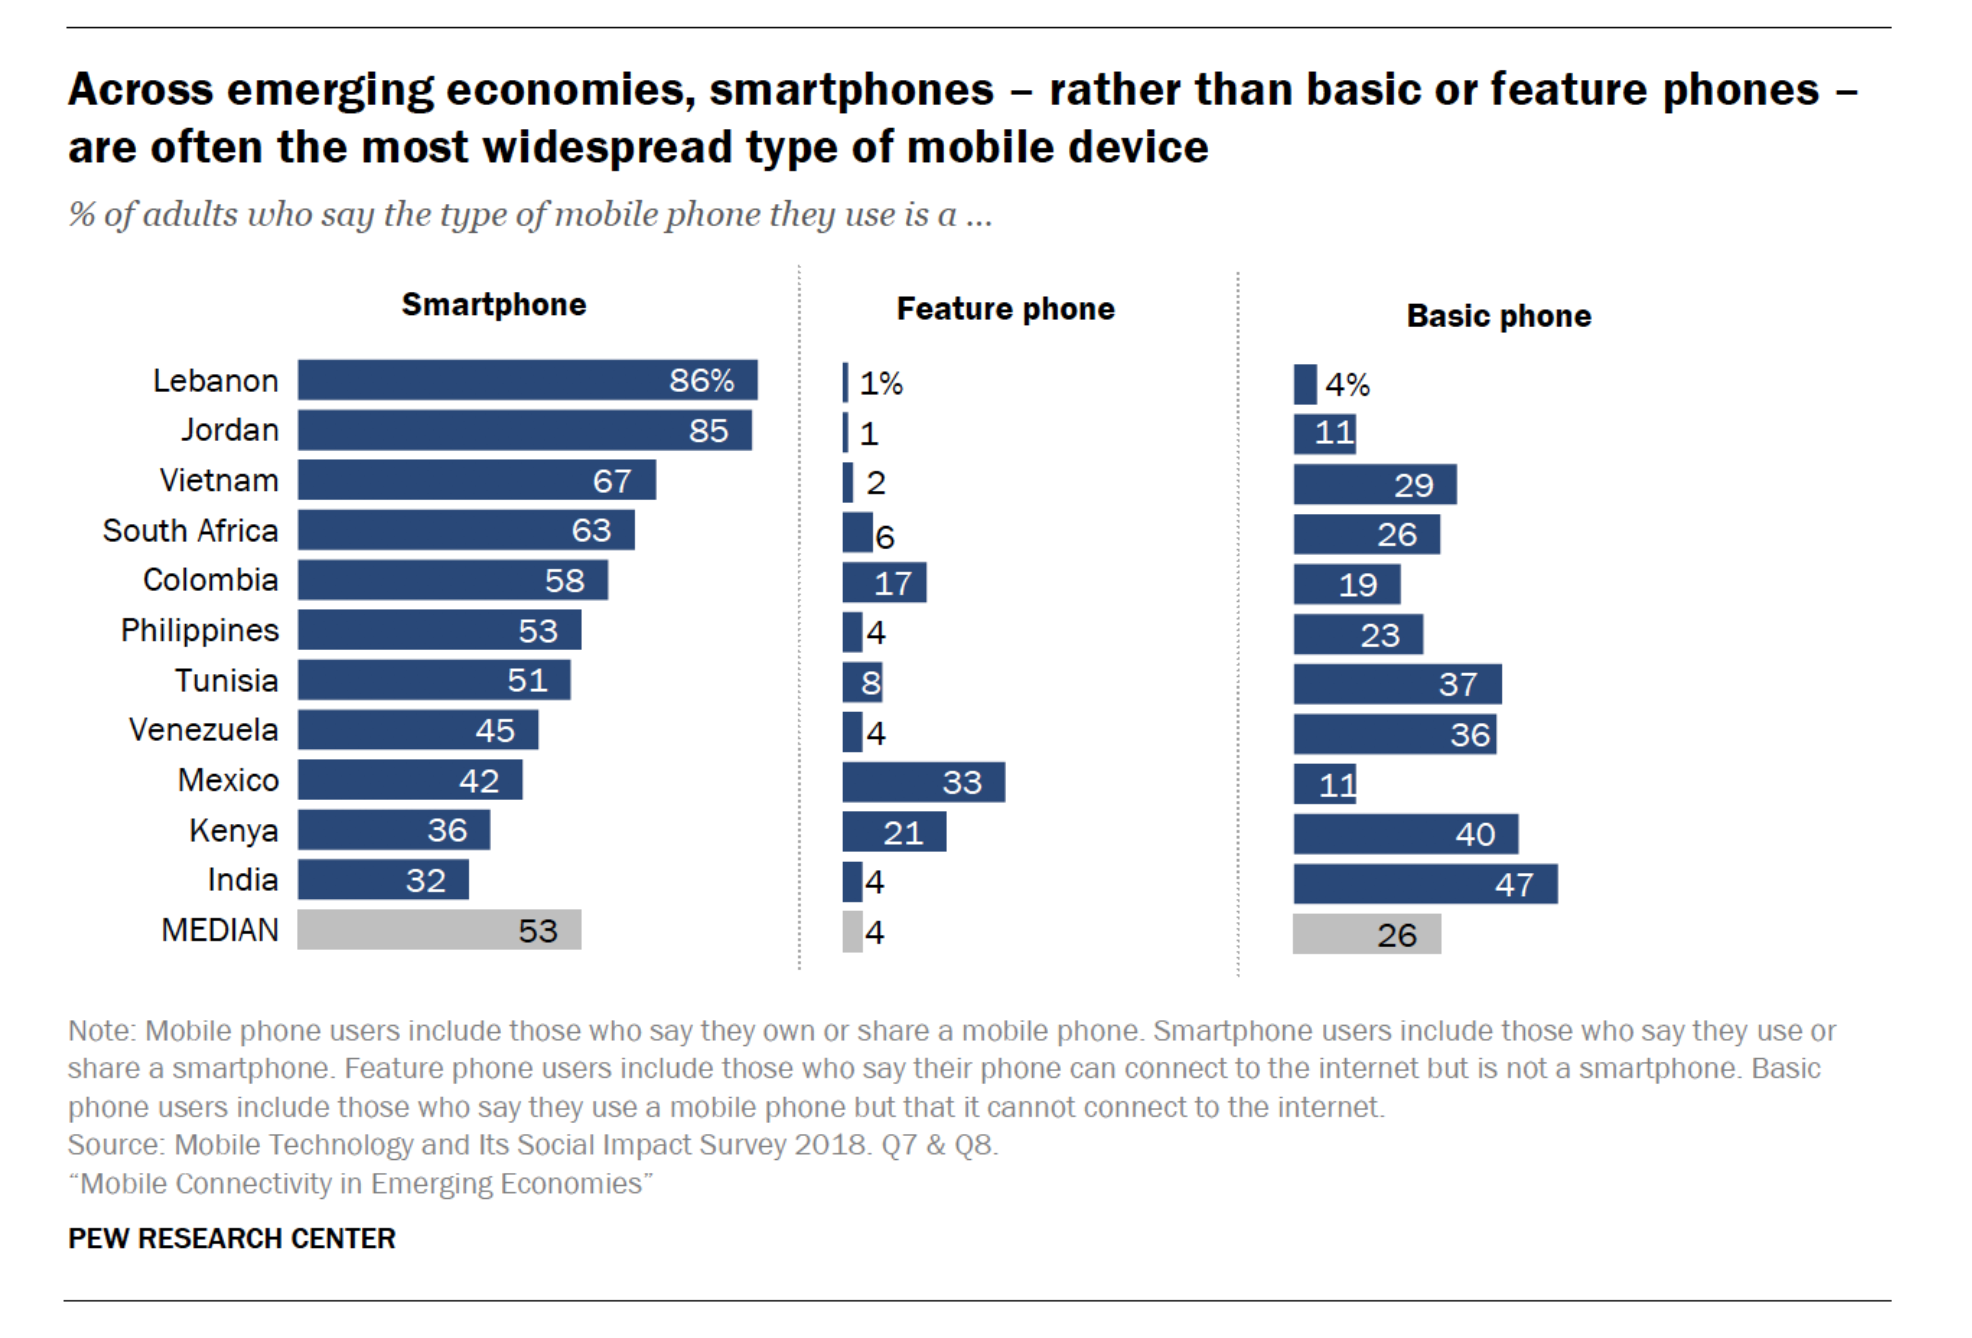 More mobile phone owners in emerging markets use a smartphone than any other kind